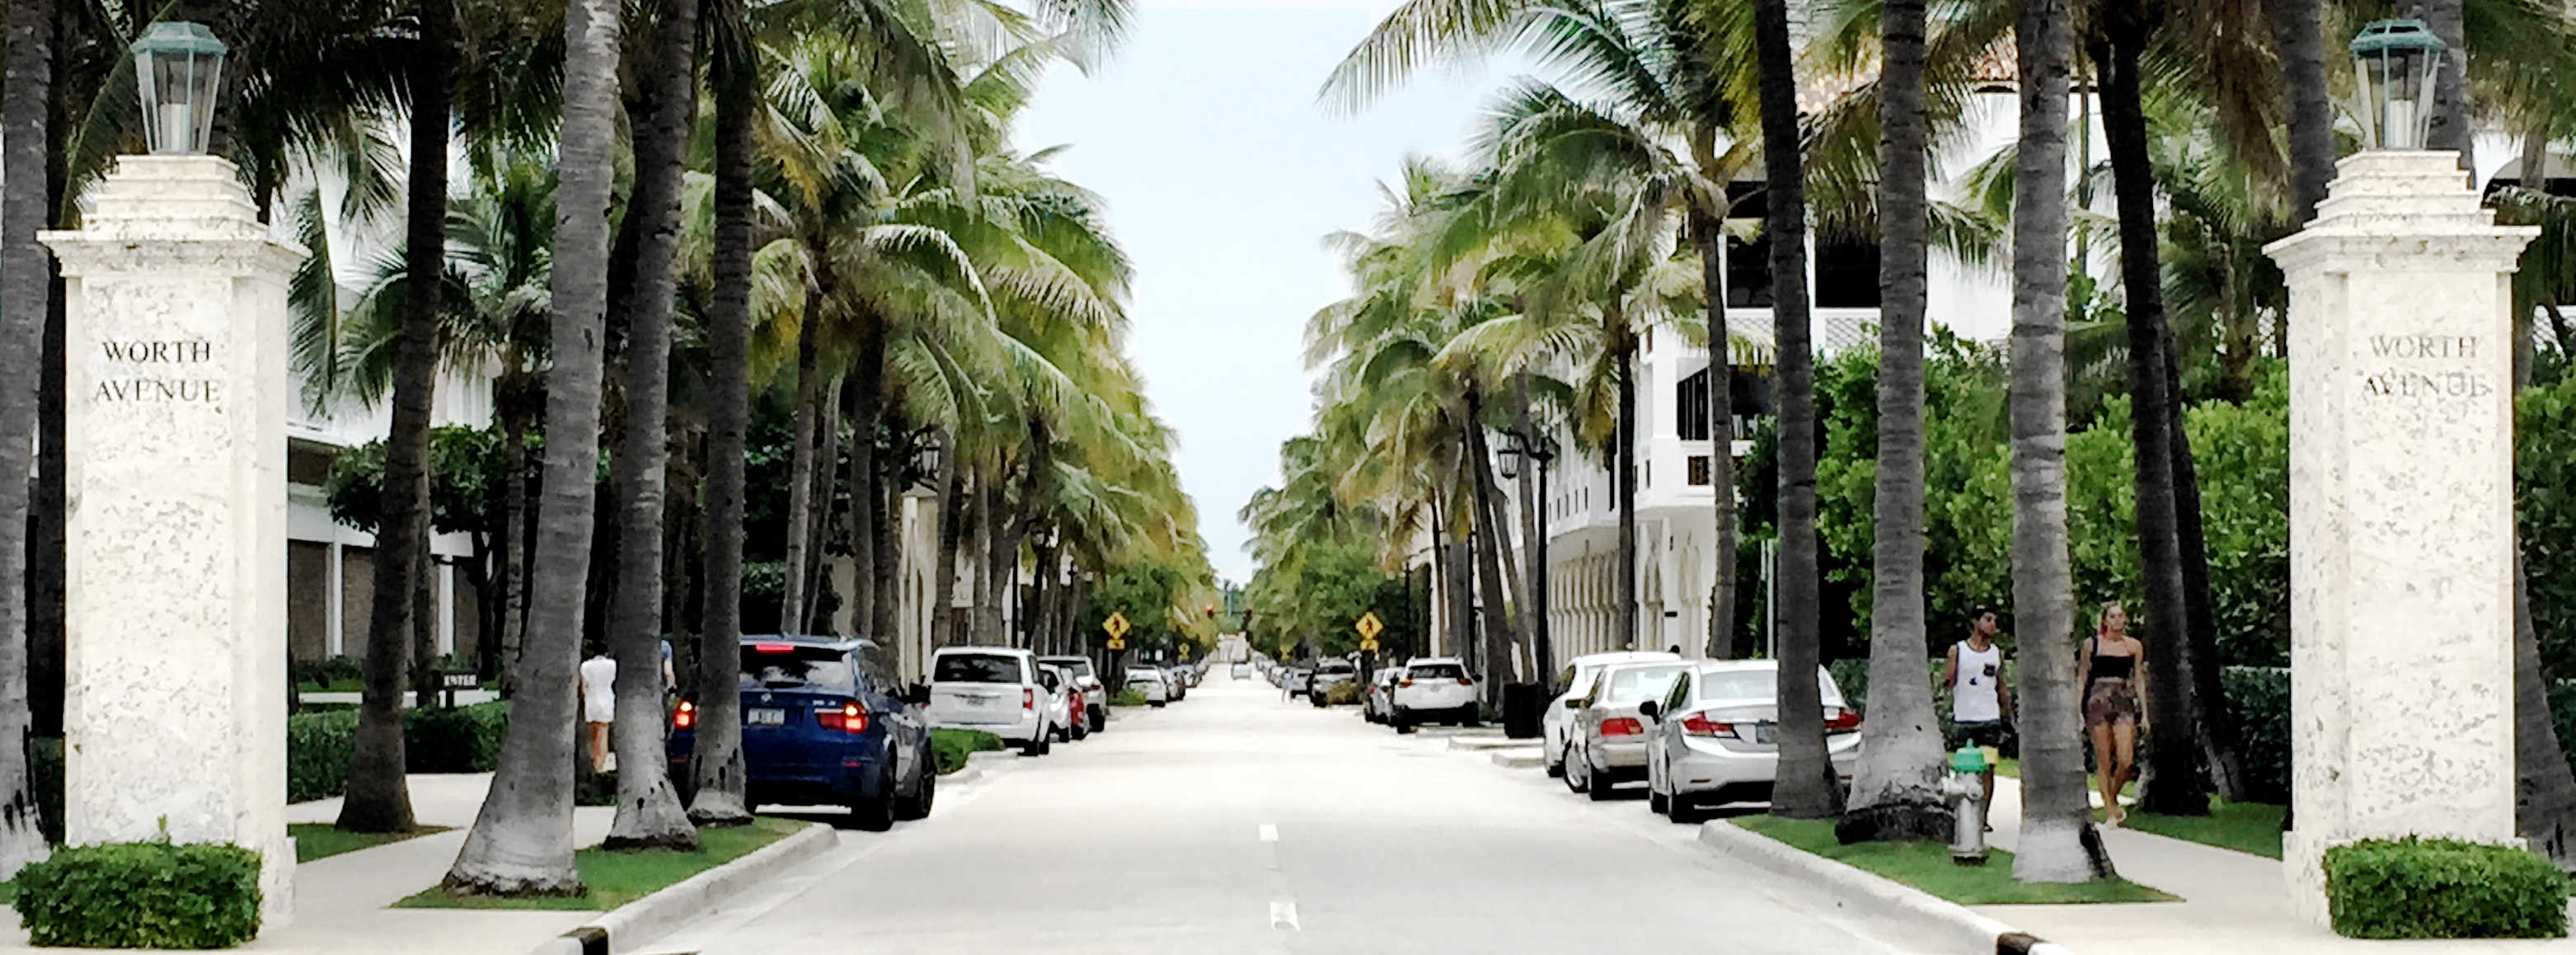 Entrance to Worth Avenue - Palm Beach, Florida